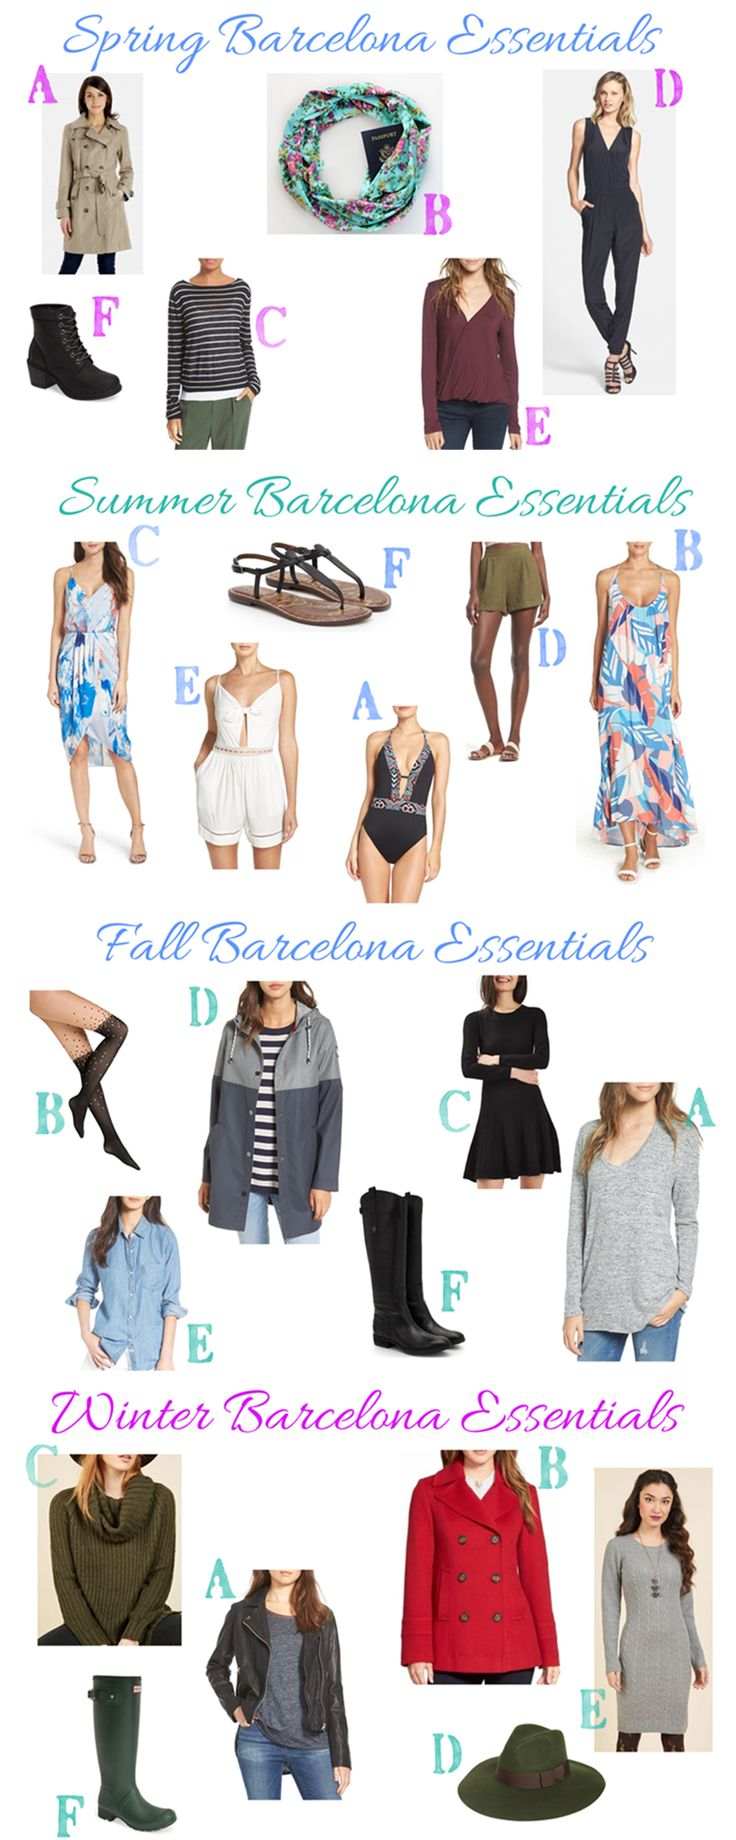 Heading to Barcelona?  These are the women's packing essentials you need no matter the season!